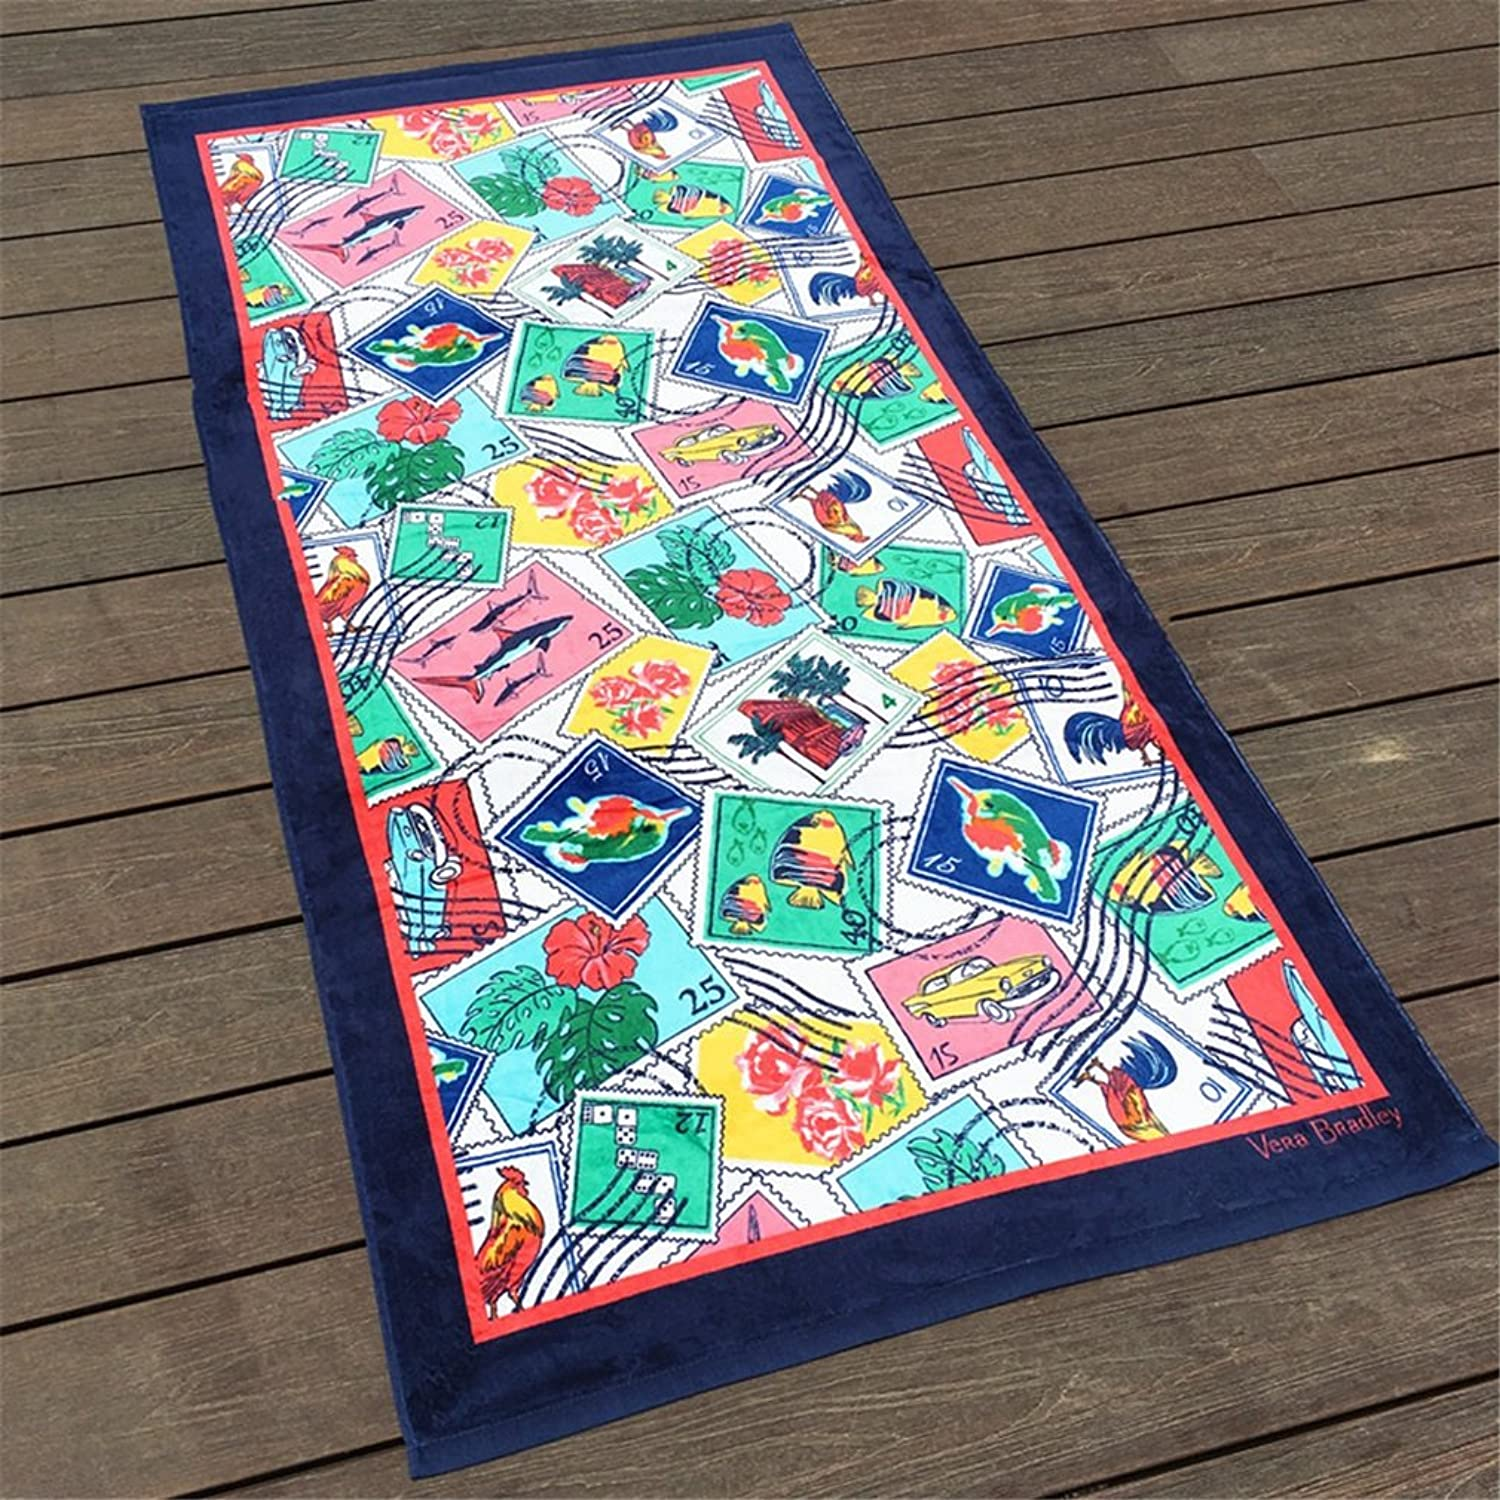 Beach Towels Large Bath Towel 10 Styles Ethnic Style Thick Cotton Adult Beach Towel Pool Massage Sauna Beach Yacht Gym Fitness Kitchen Yoga Picnic Blanket Home Decoration ( color   9 )